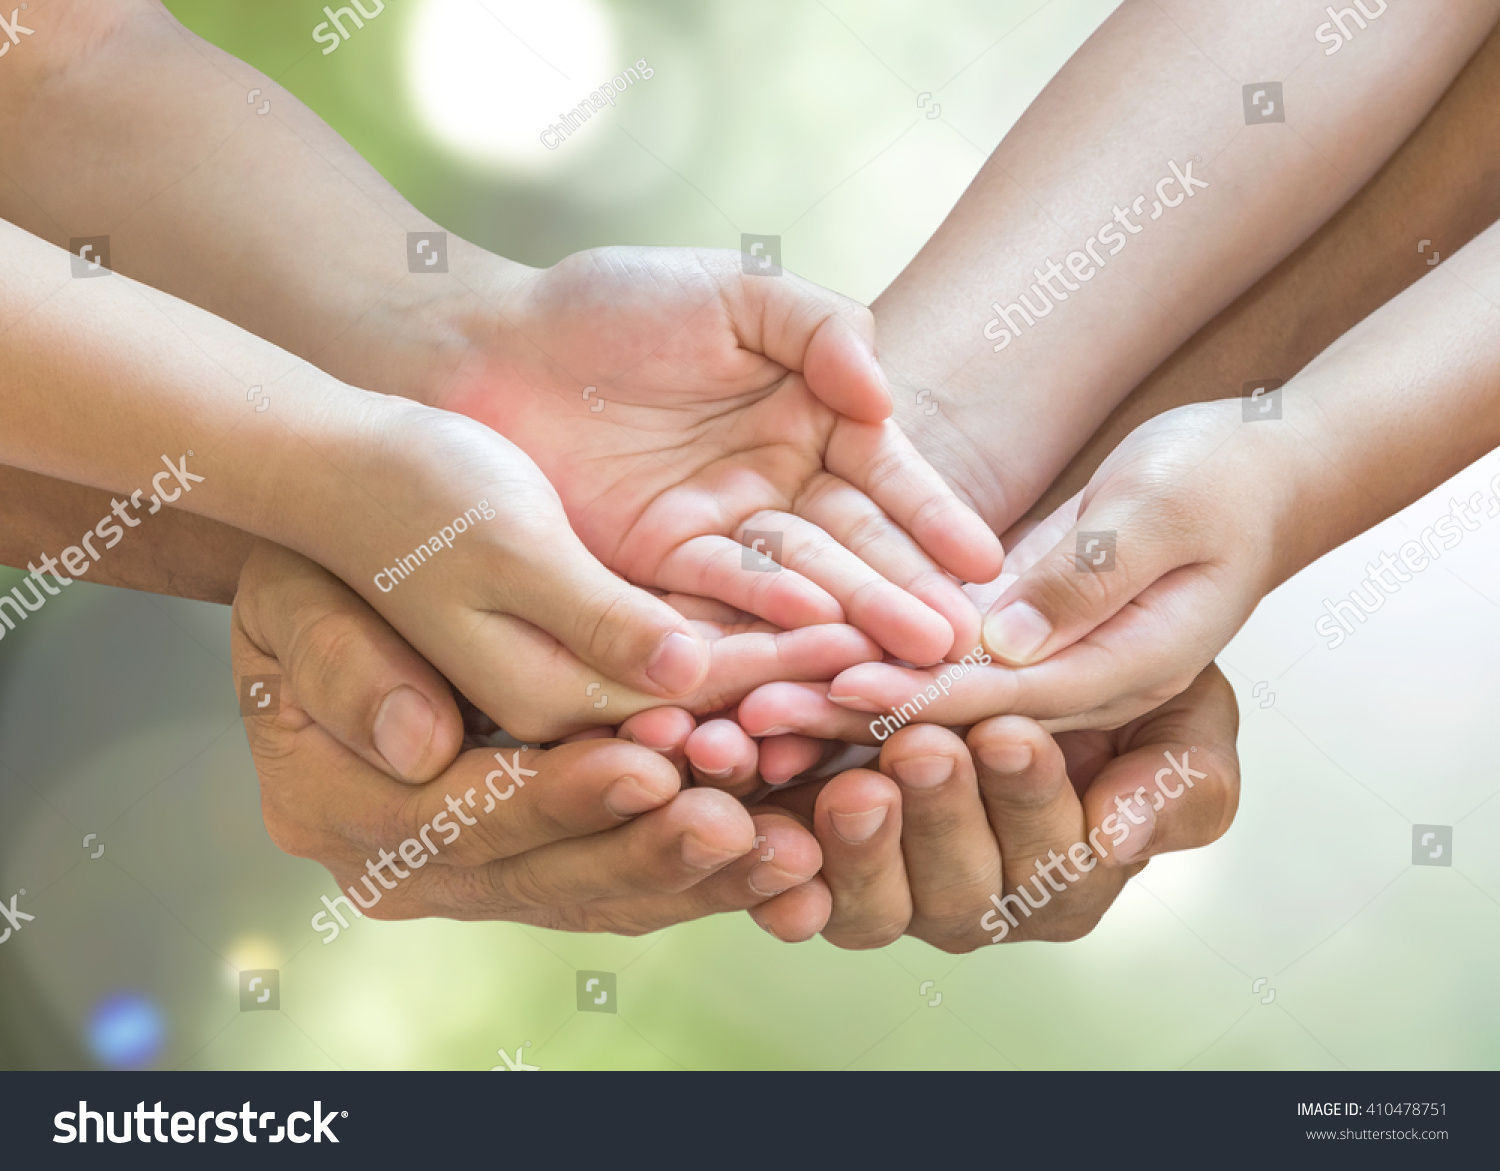 Family Hands Praying Together Clipping Path Stock Photo ...